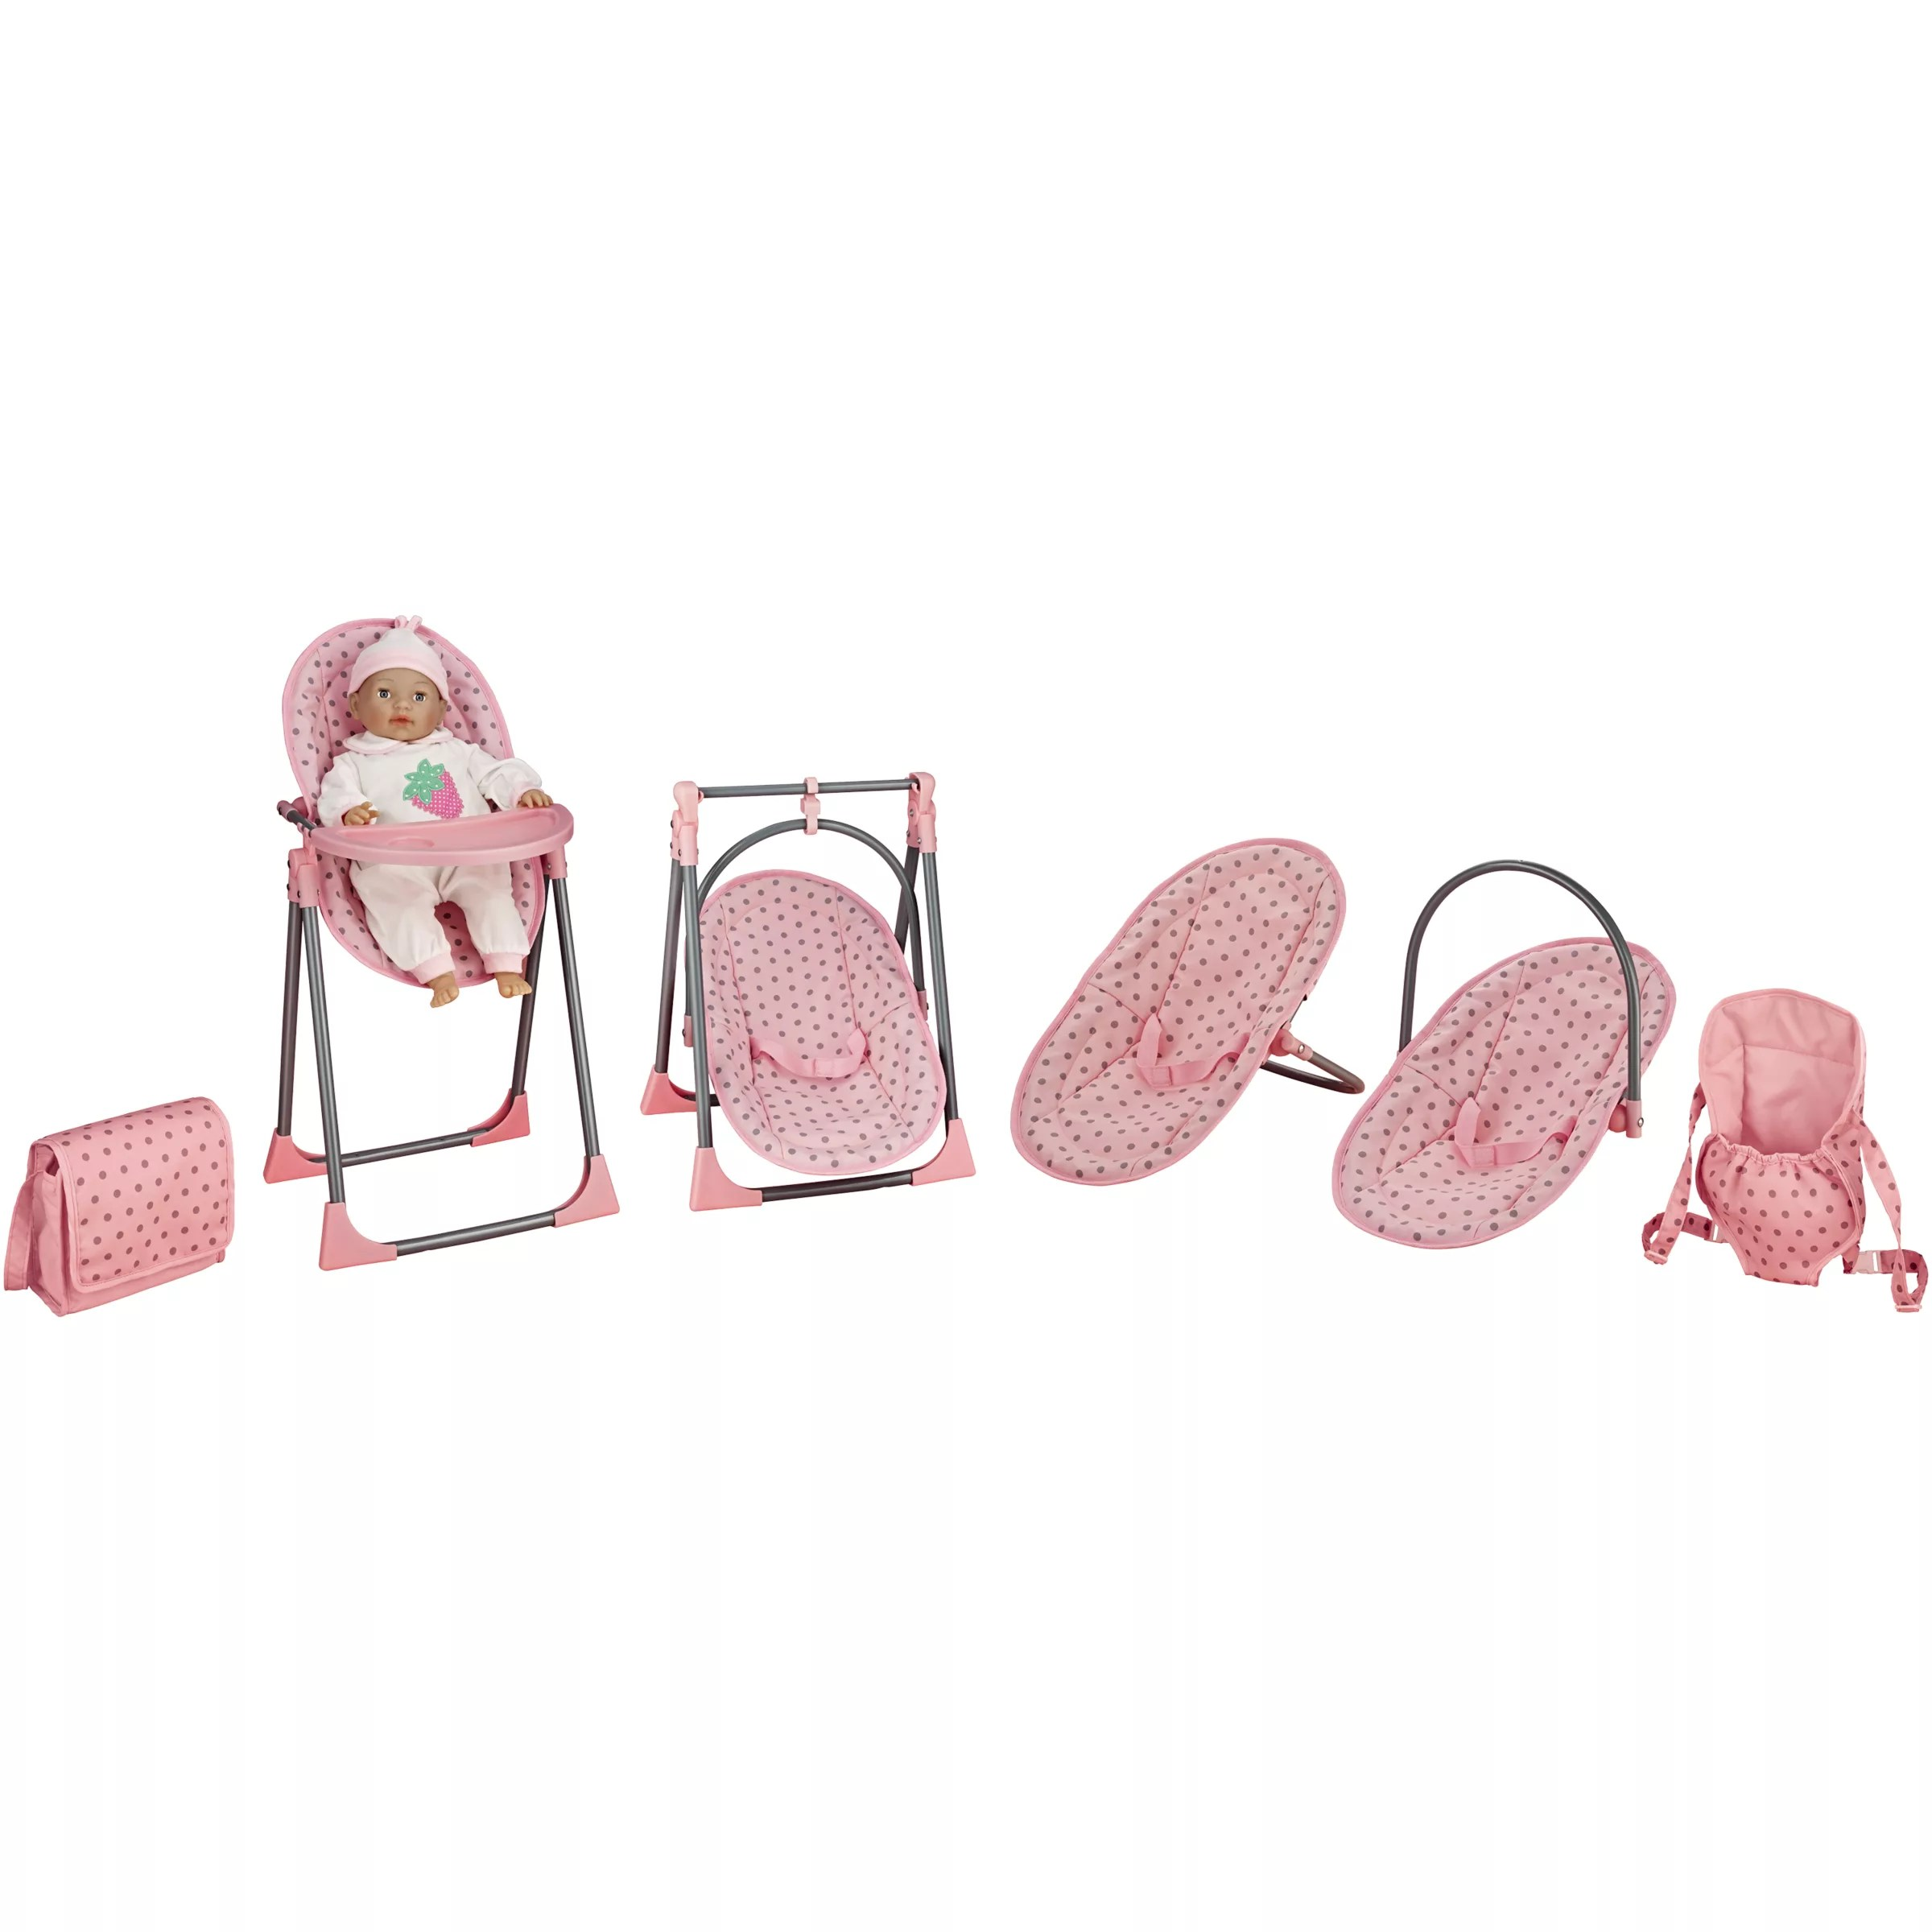 baby toy high chair set kmart beach chairs with canopy john lewis doll 4 in 1 highchair at partners buyjohn online johnlewis com